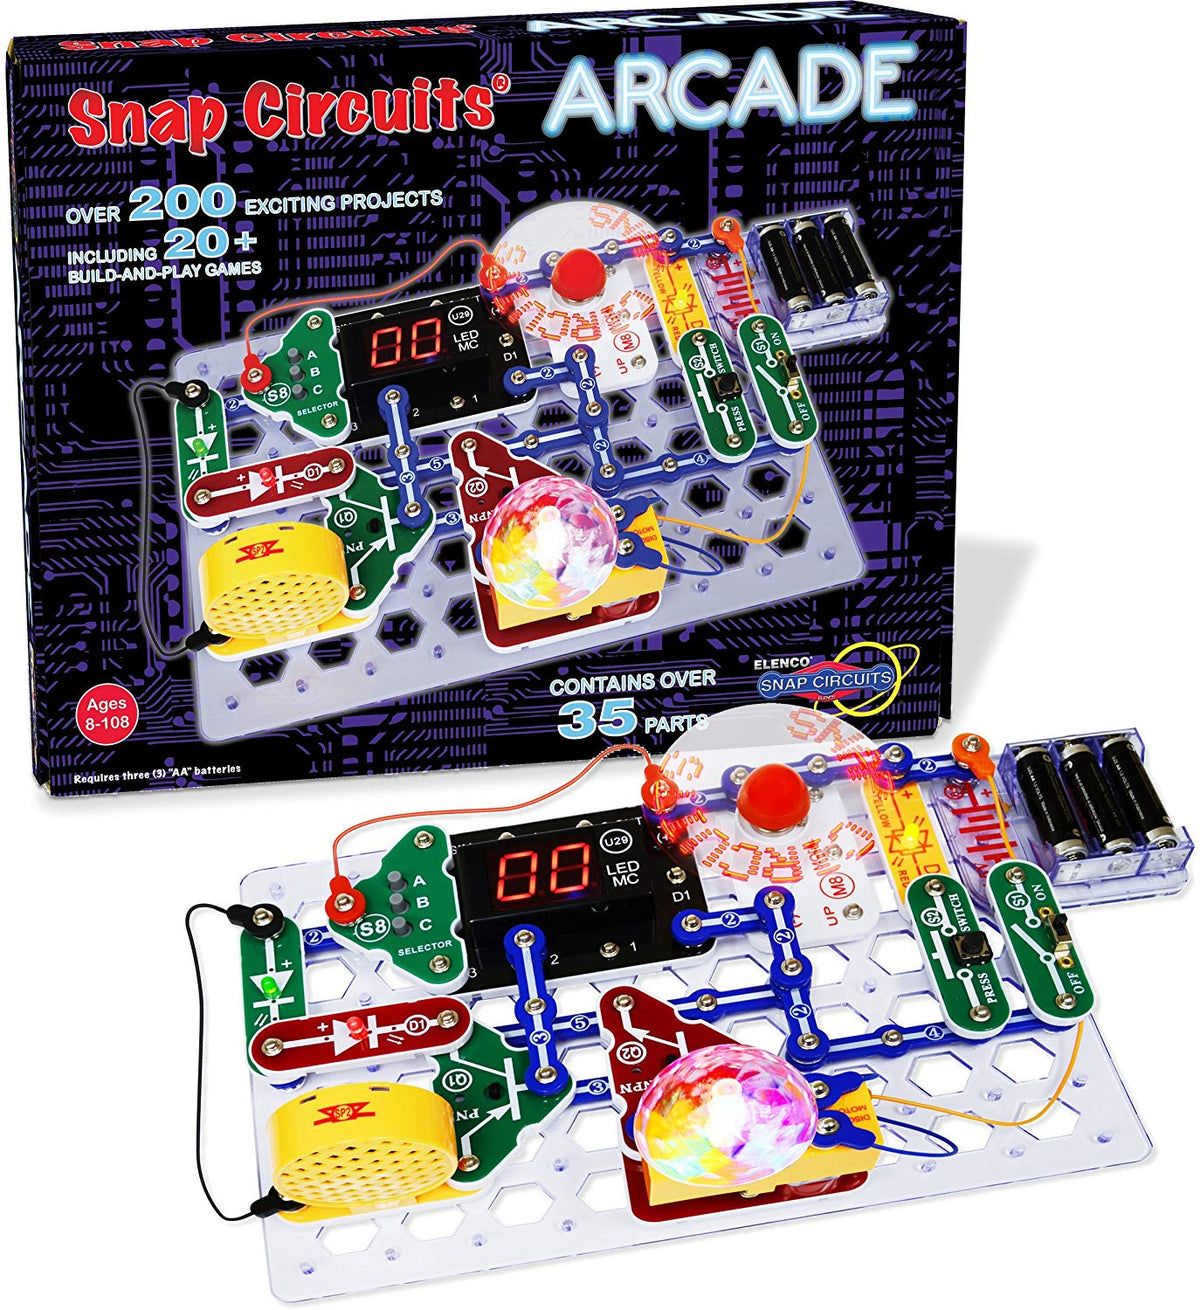 Snap Circuits Arcade Electronics Exploration Kit Over 200 STEM Projects 4-Color Project Manual  20+ Build and Play Games  35+ Snap Modules